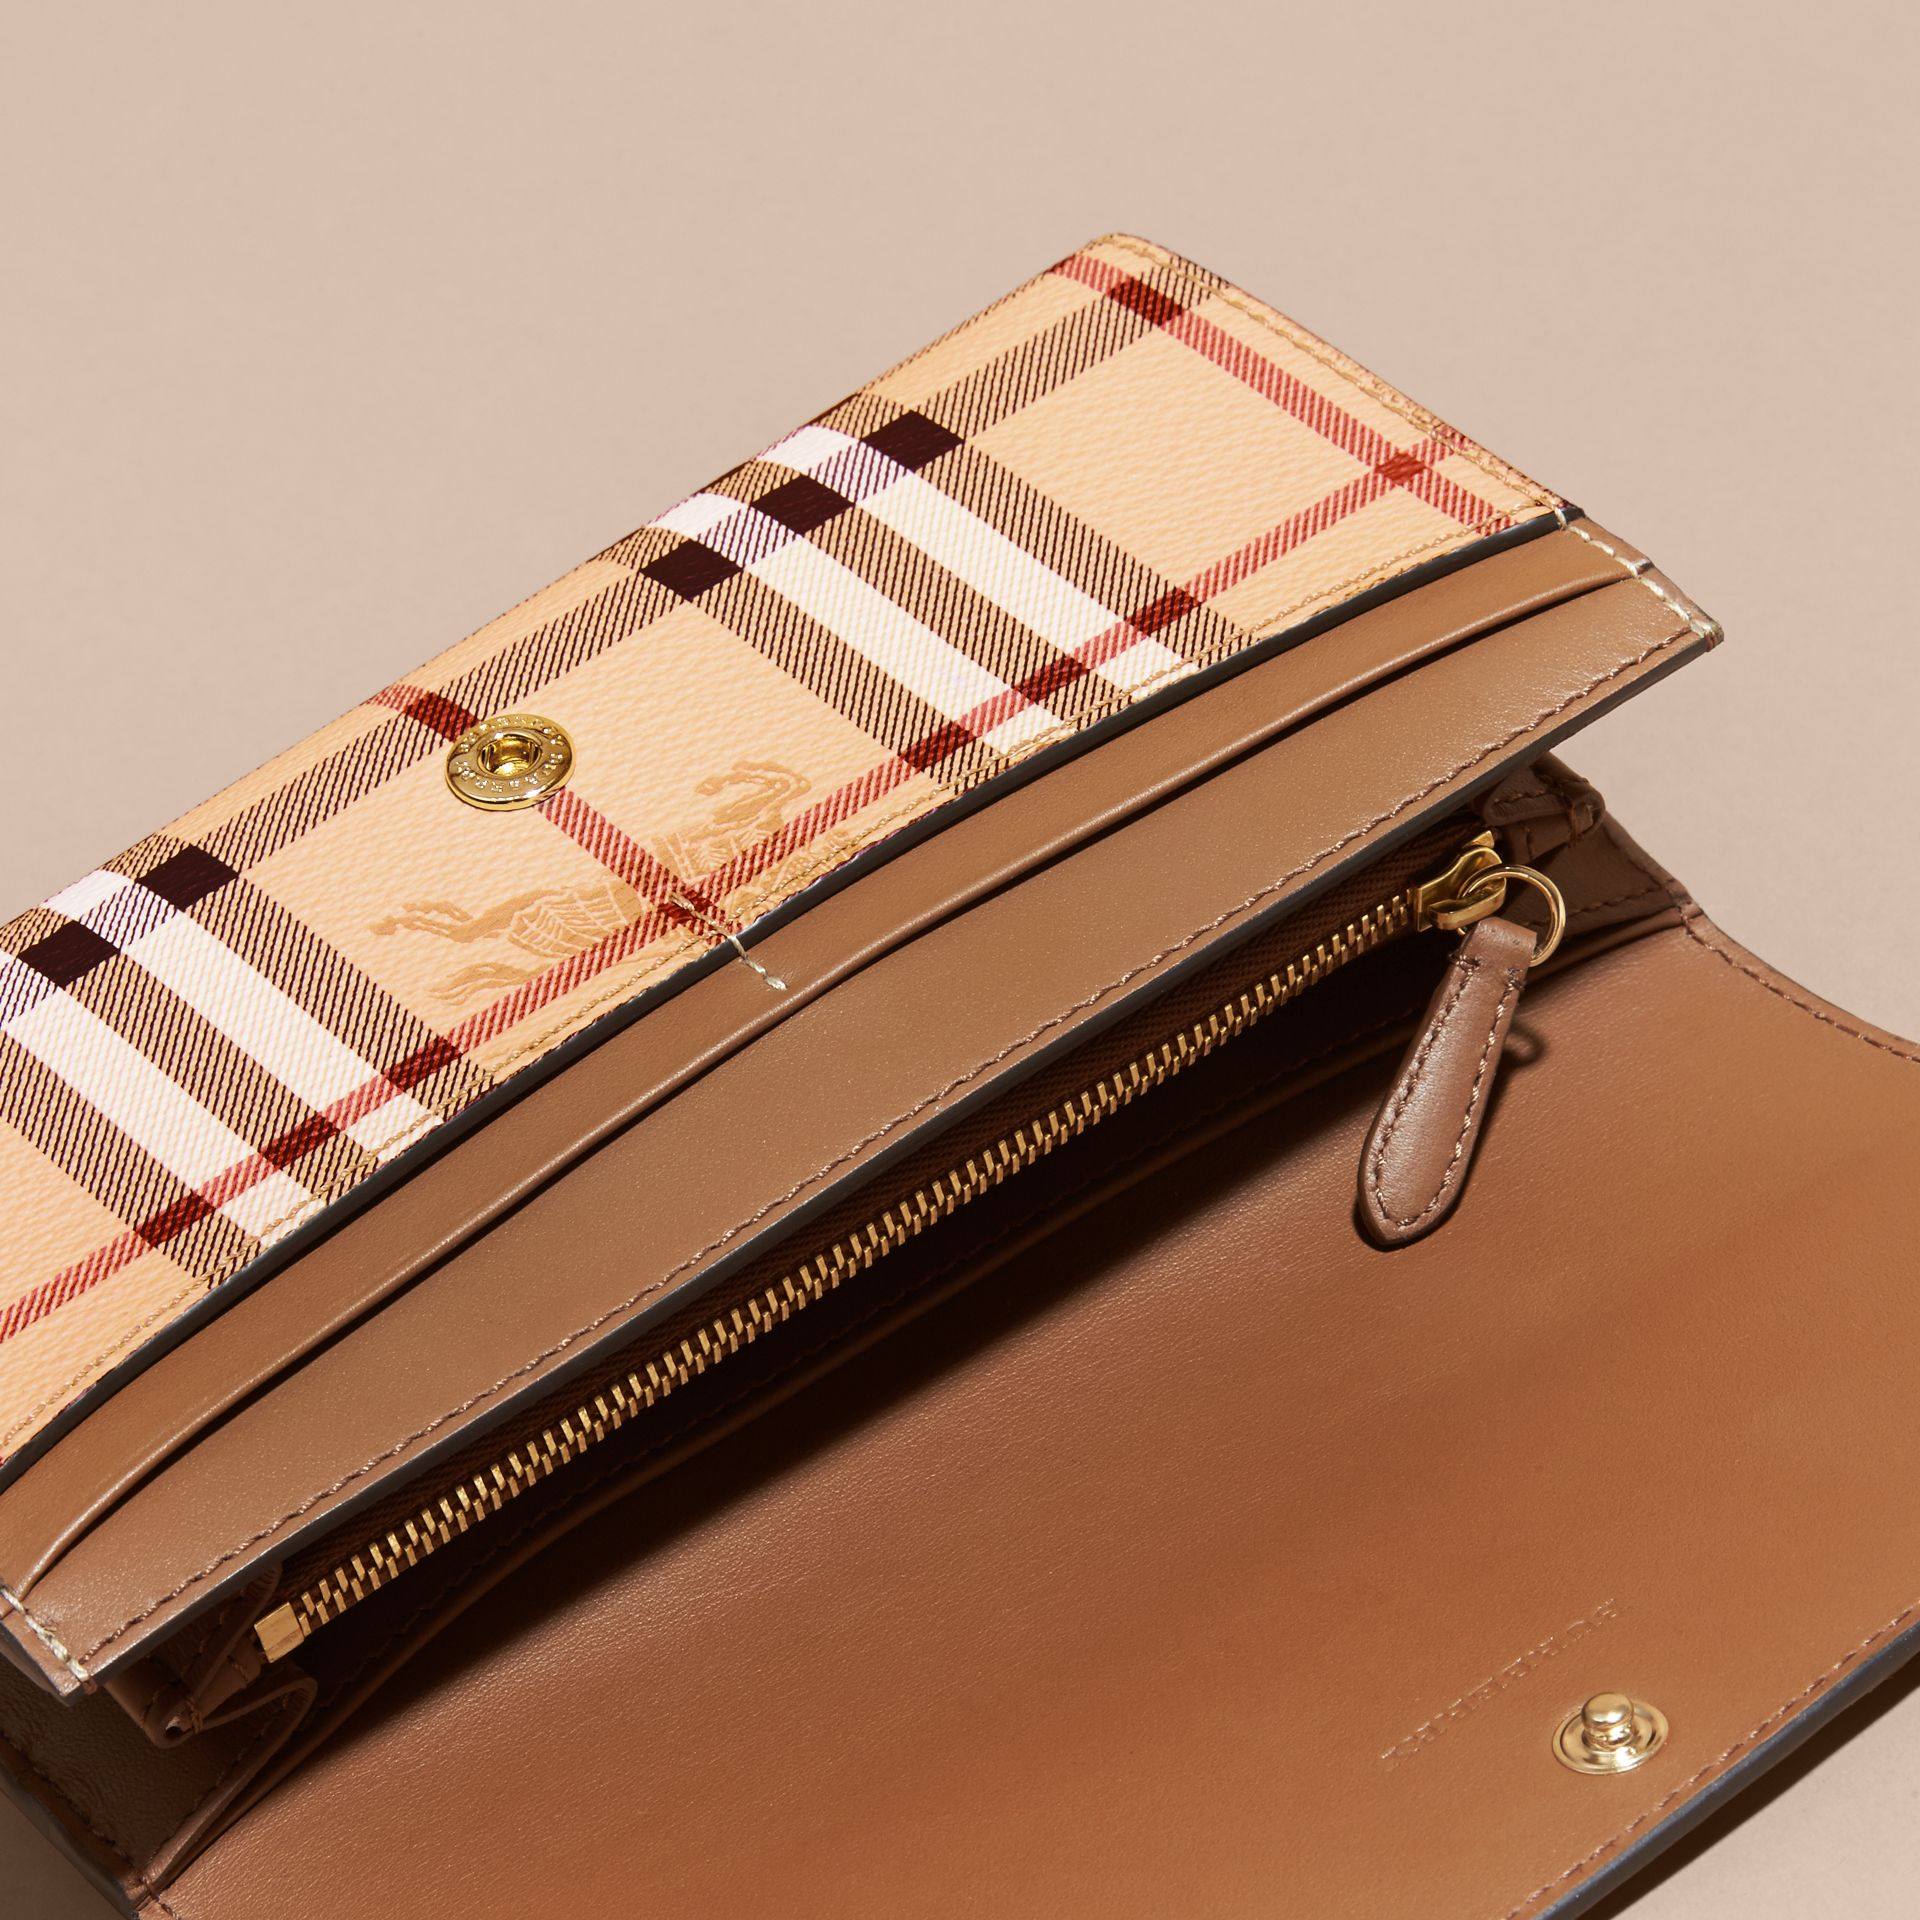 Haymarket Check and Leather Continental Wallet in Tan - Women | Burberry - gallery image 5